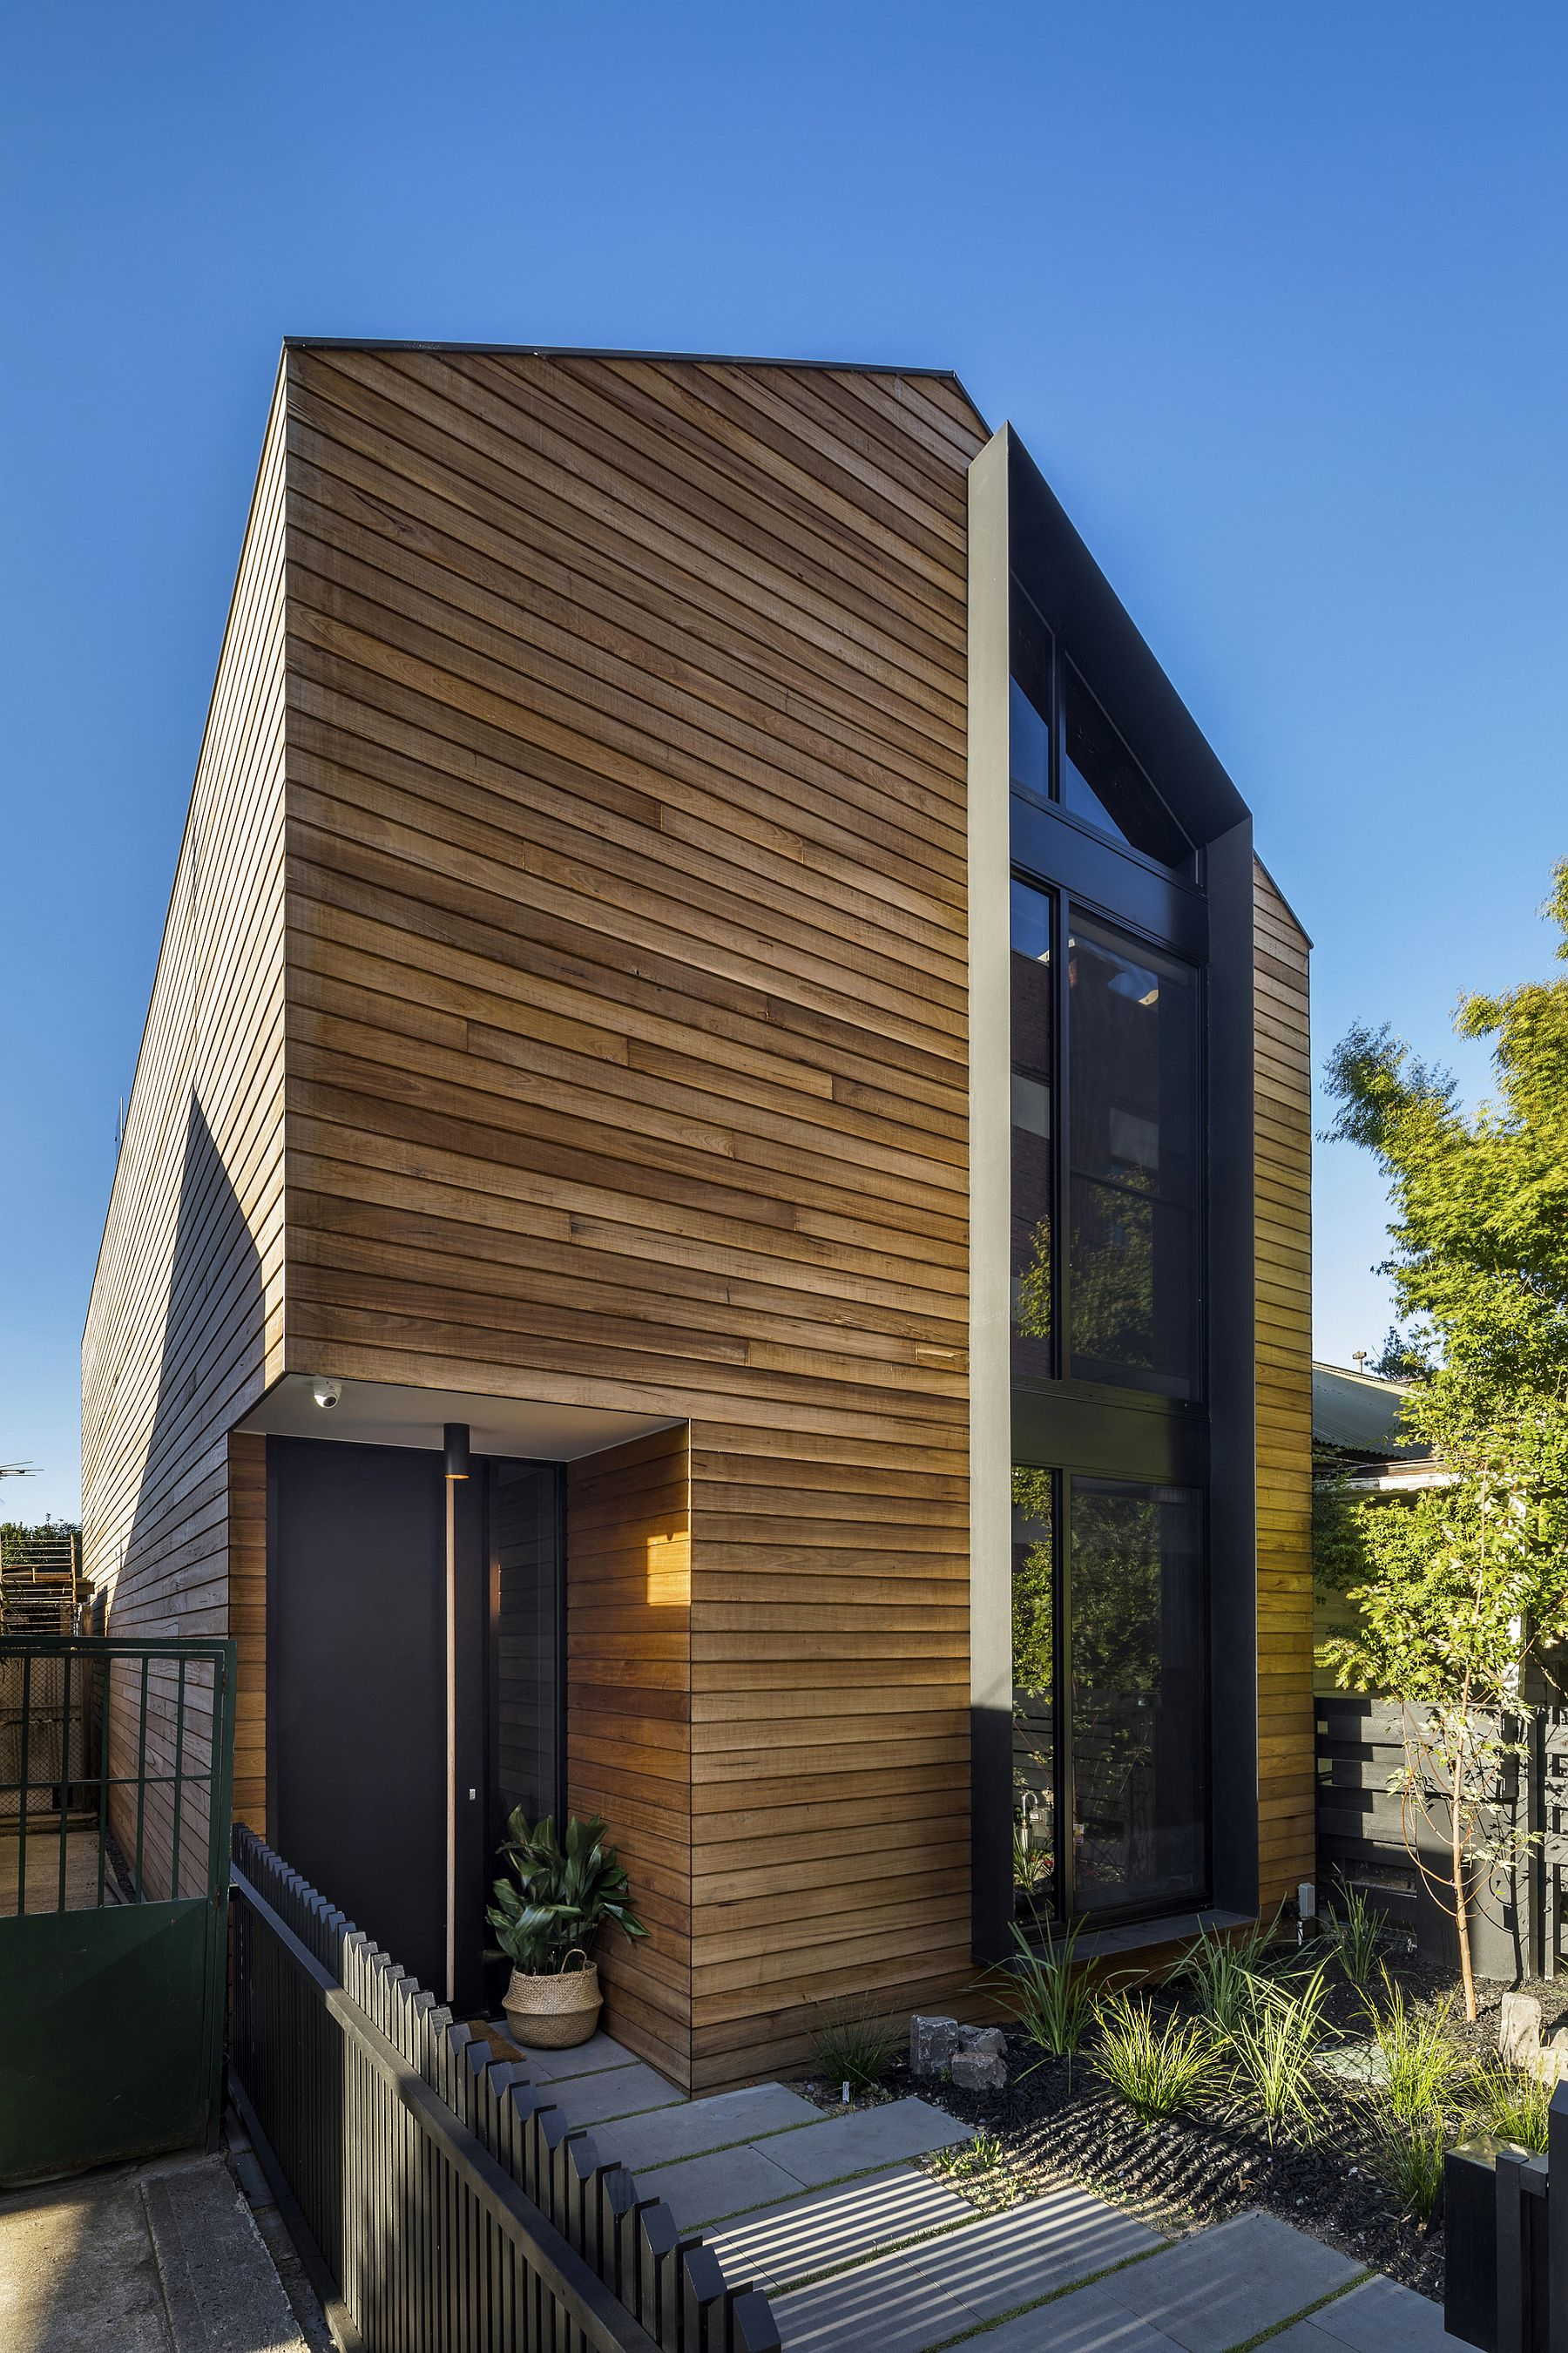 Wooden slats cover the street facade of the T2 Residence